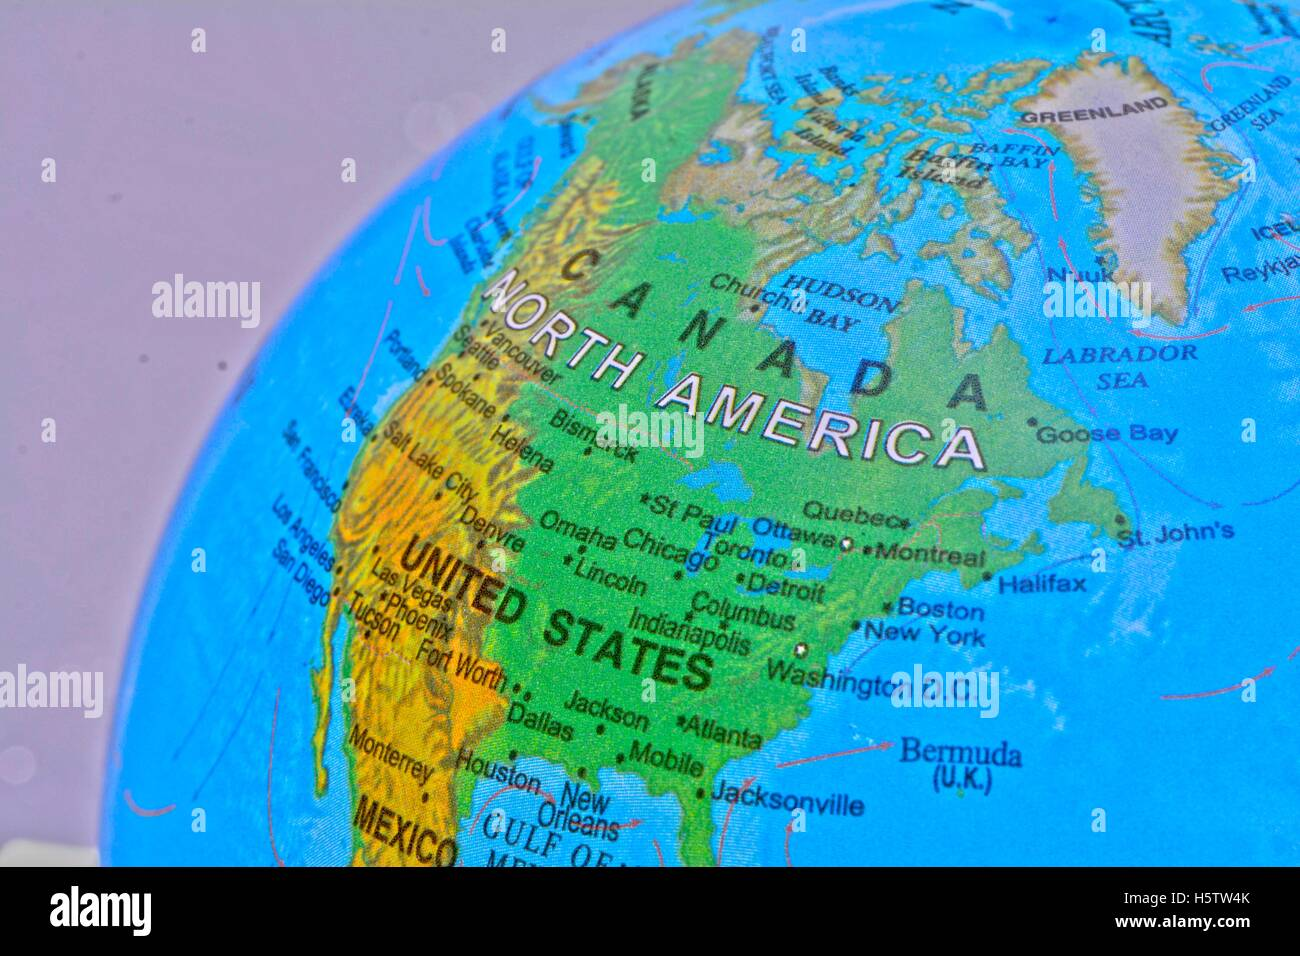 A Globe showing the map of United States and Canada Stock ...